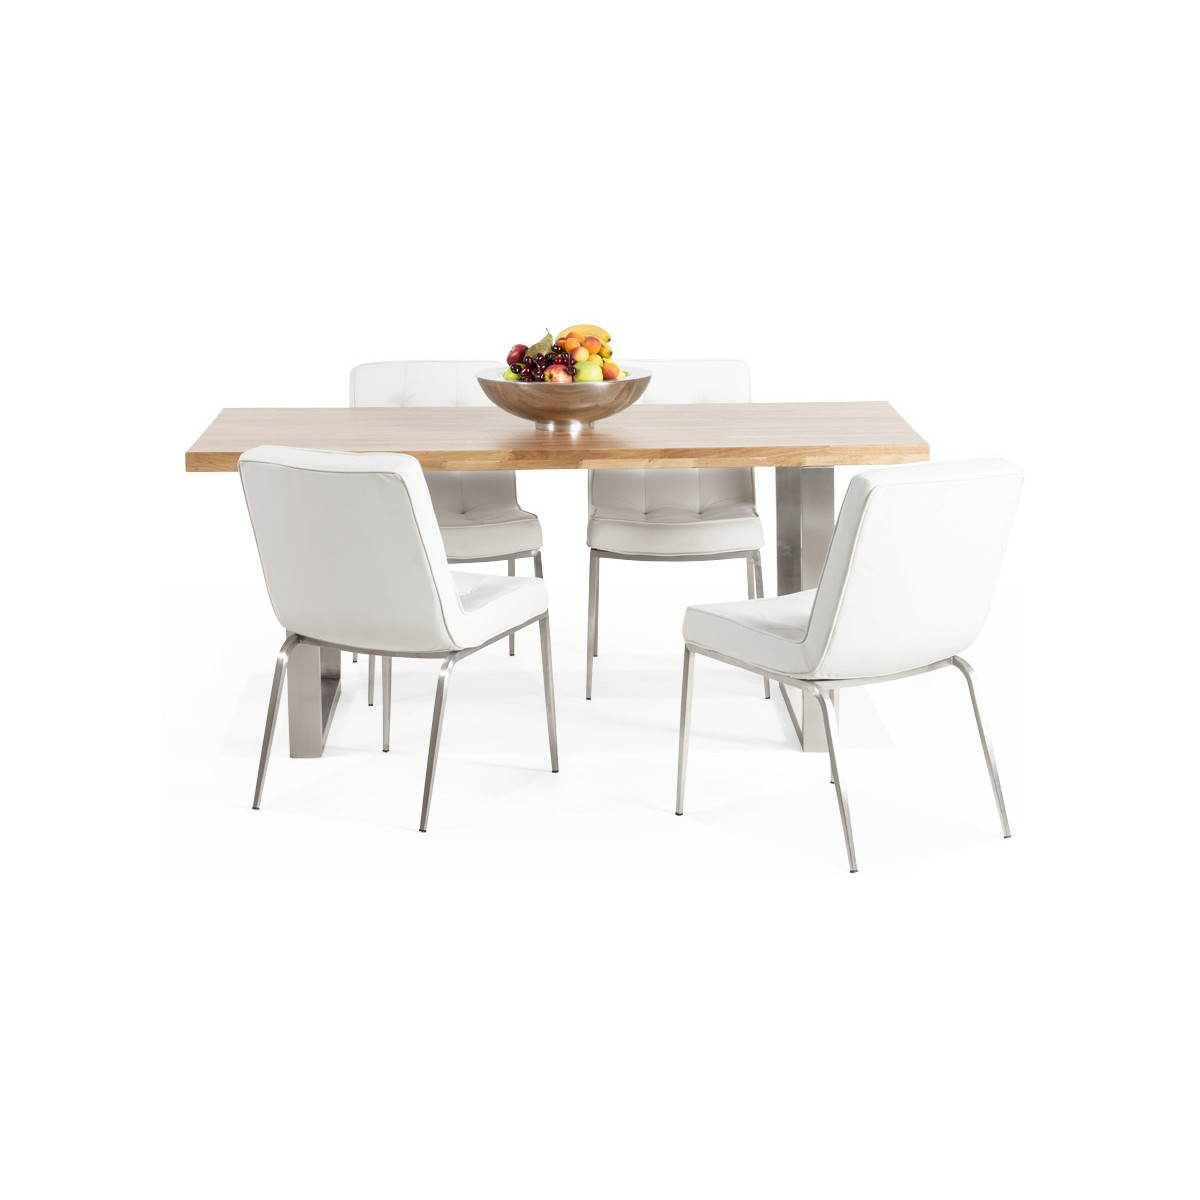 Chaises Chene Massif Moderne Perfect Salle A Manger Moderne D Occasion Belgique Salle A